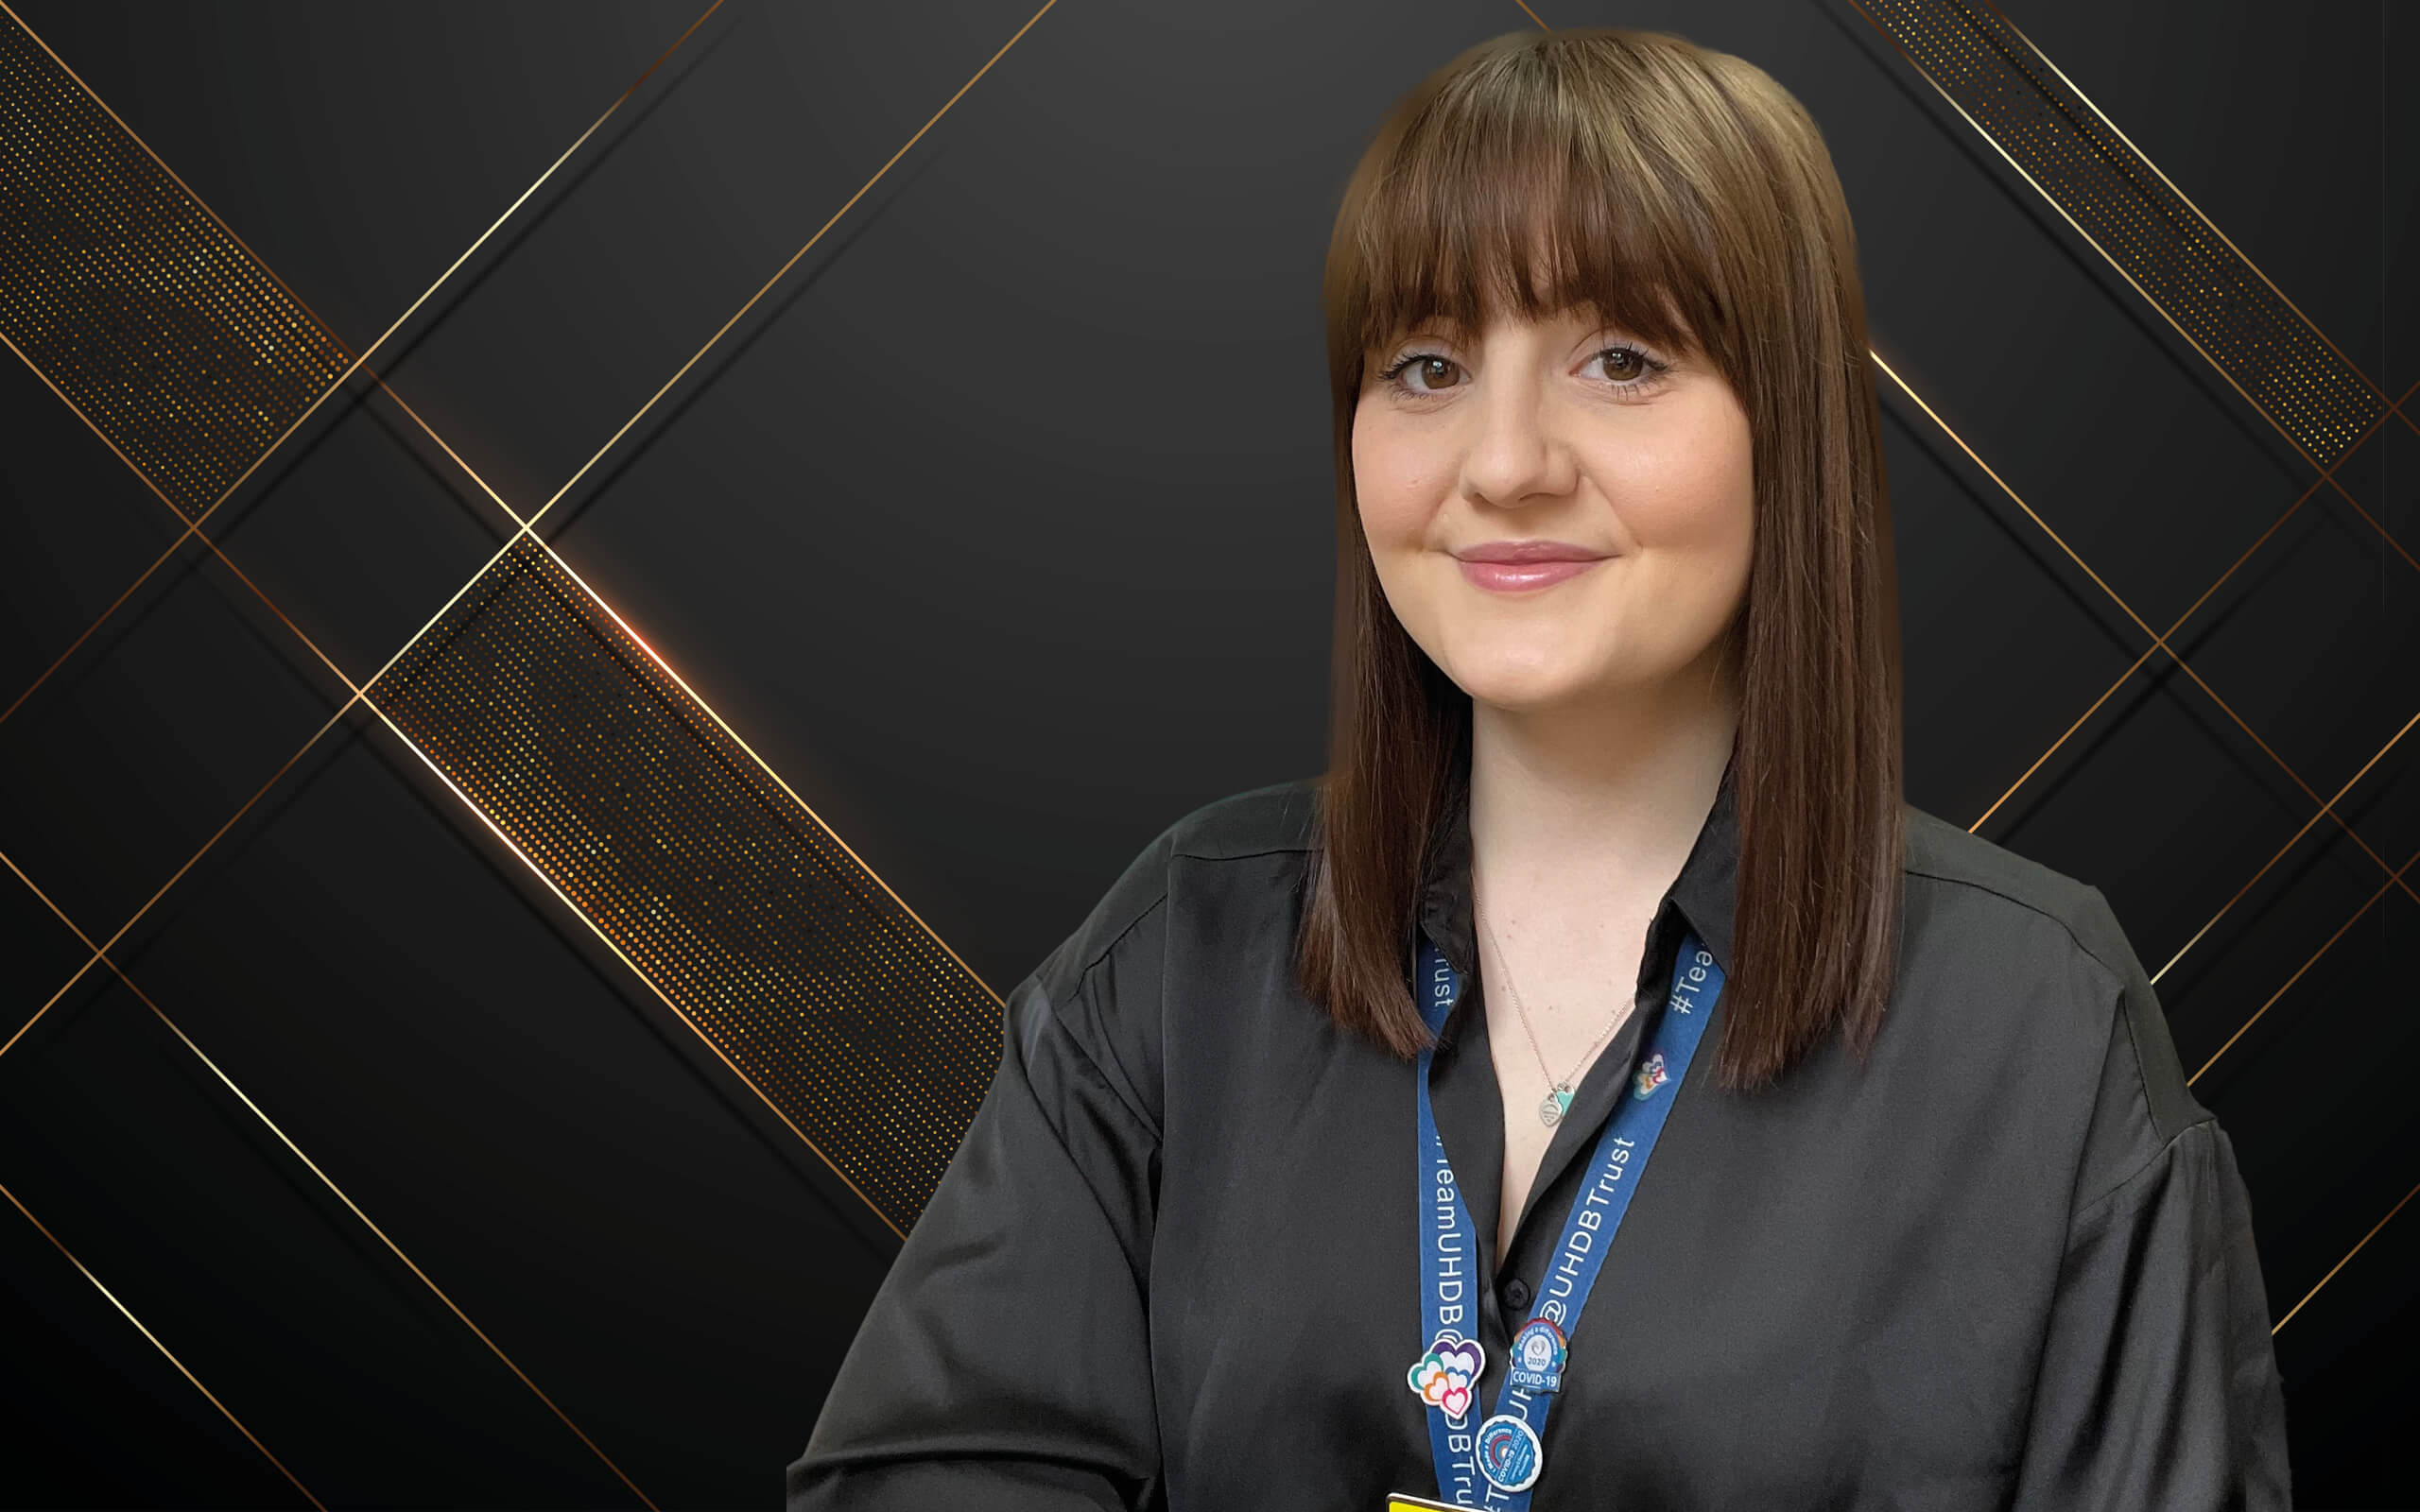 Sian Brown standing against a black and brown background.